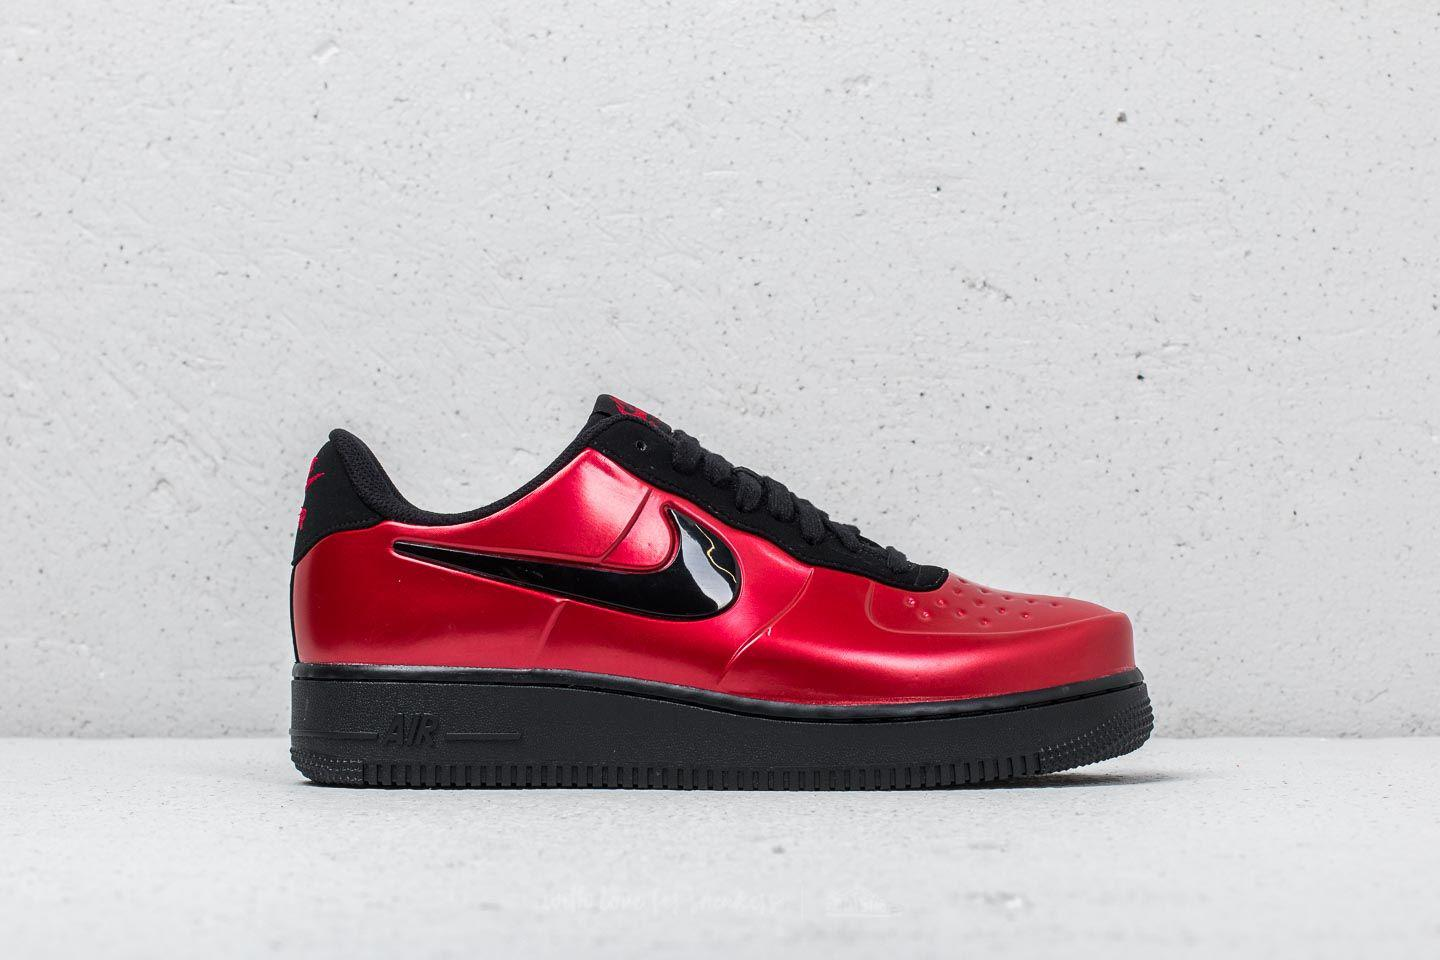 6899e2401758e Lyst - Nike Air Force 1 Foamposite Pro Cup Gym Red  Black in Red for Men